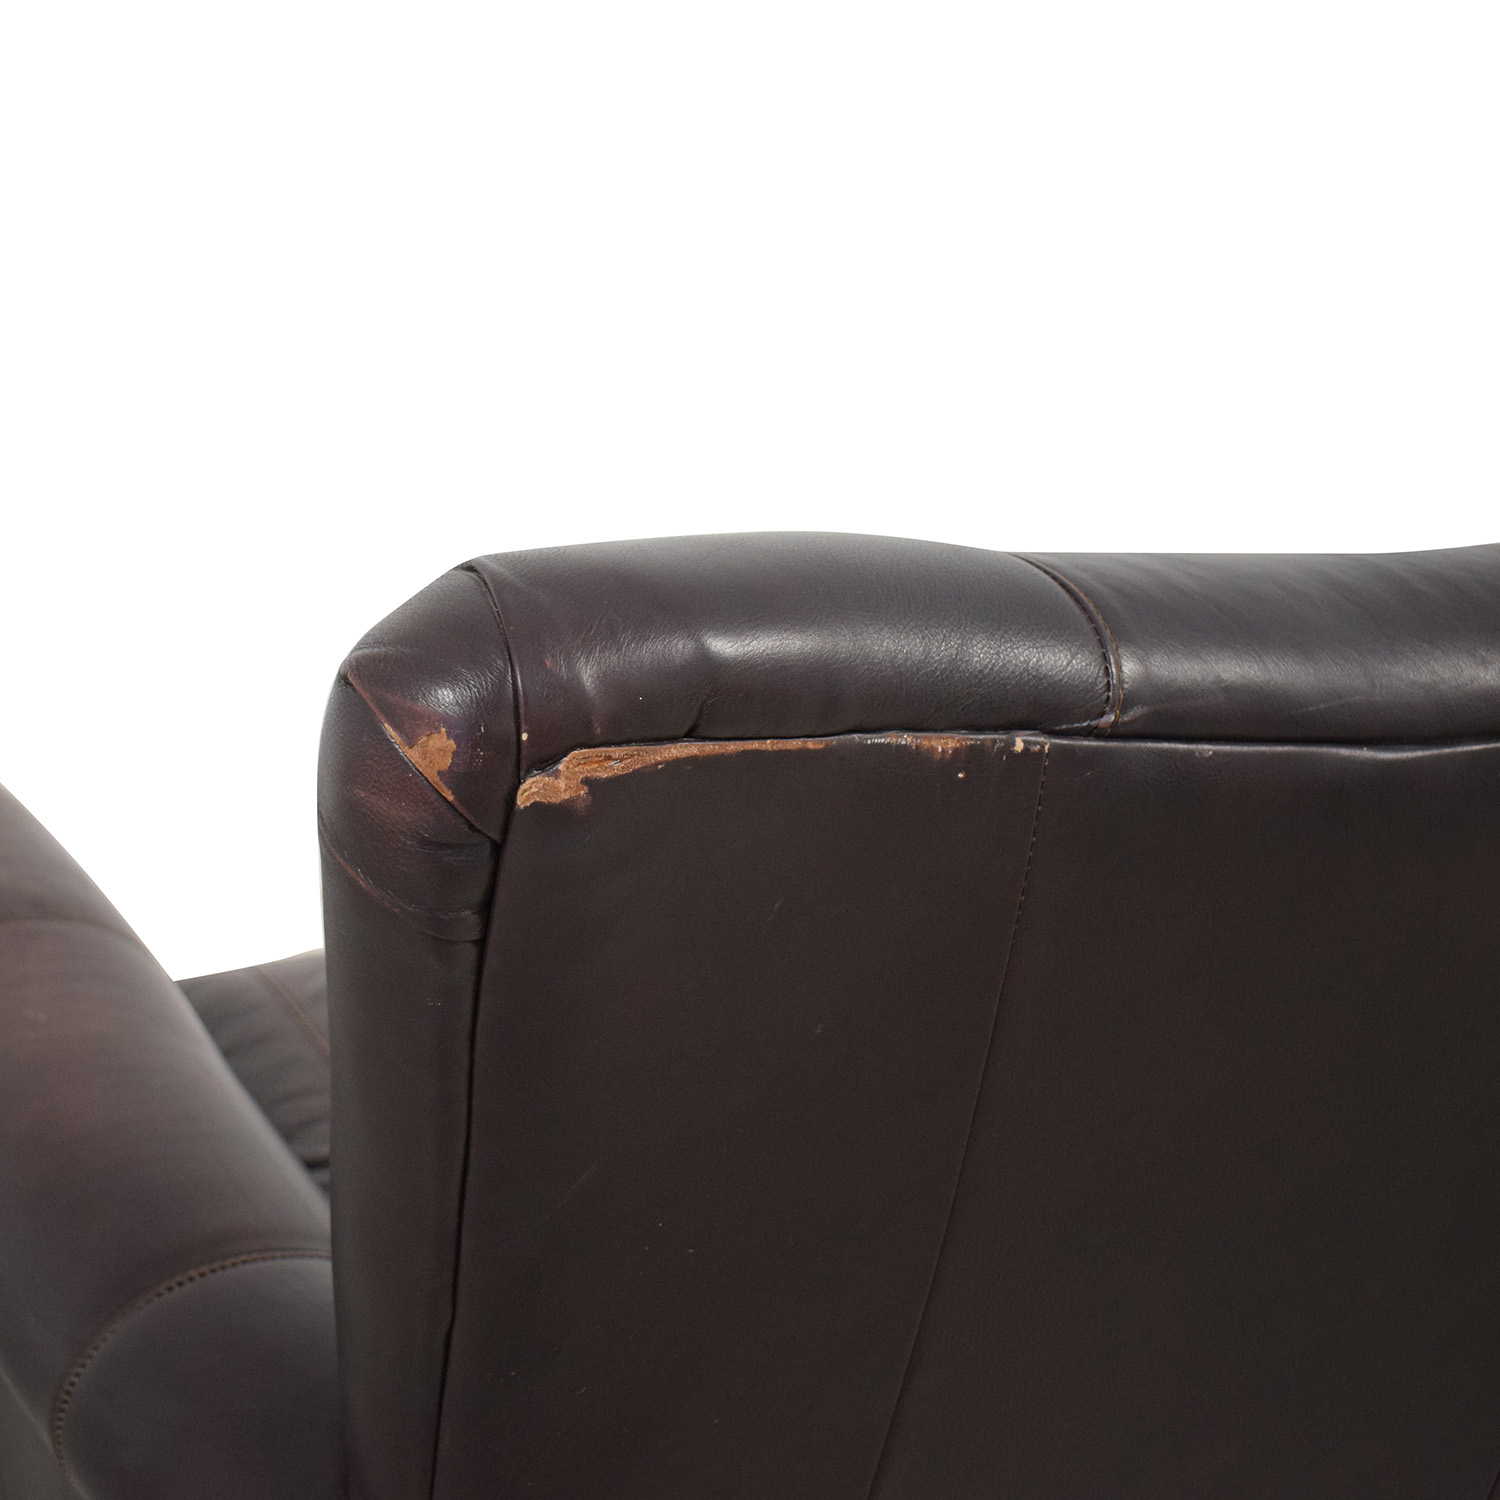 Bauhaus Furniture Leather Chair / Sofas